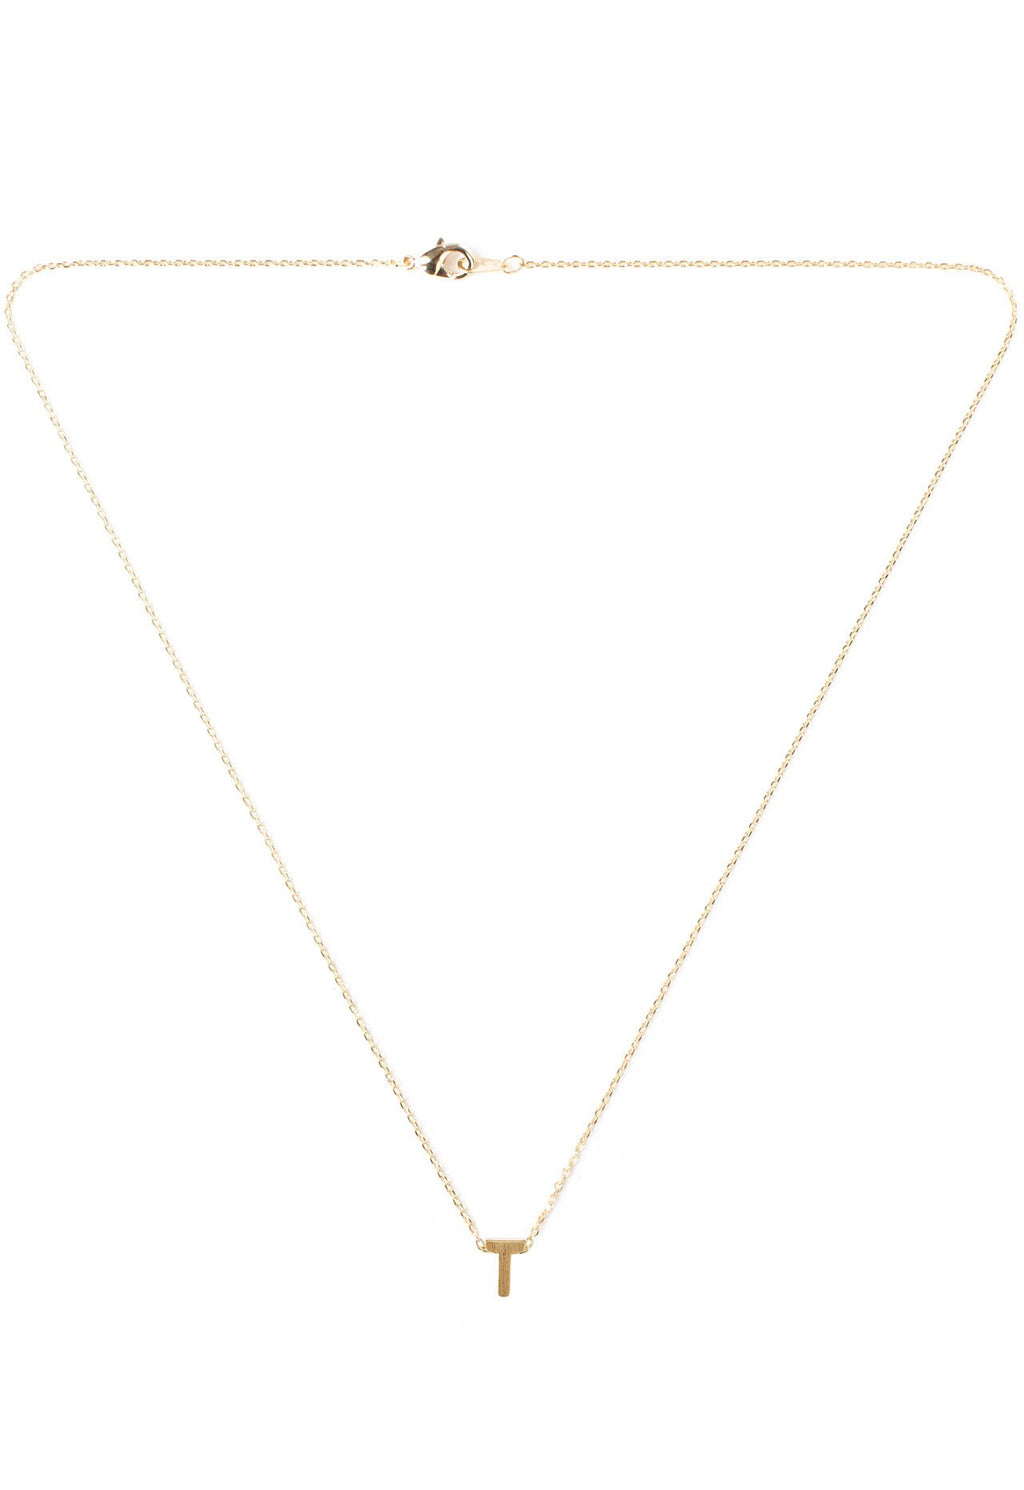 Jewelry - Be Yourself Initial Necklace - T